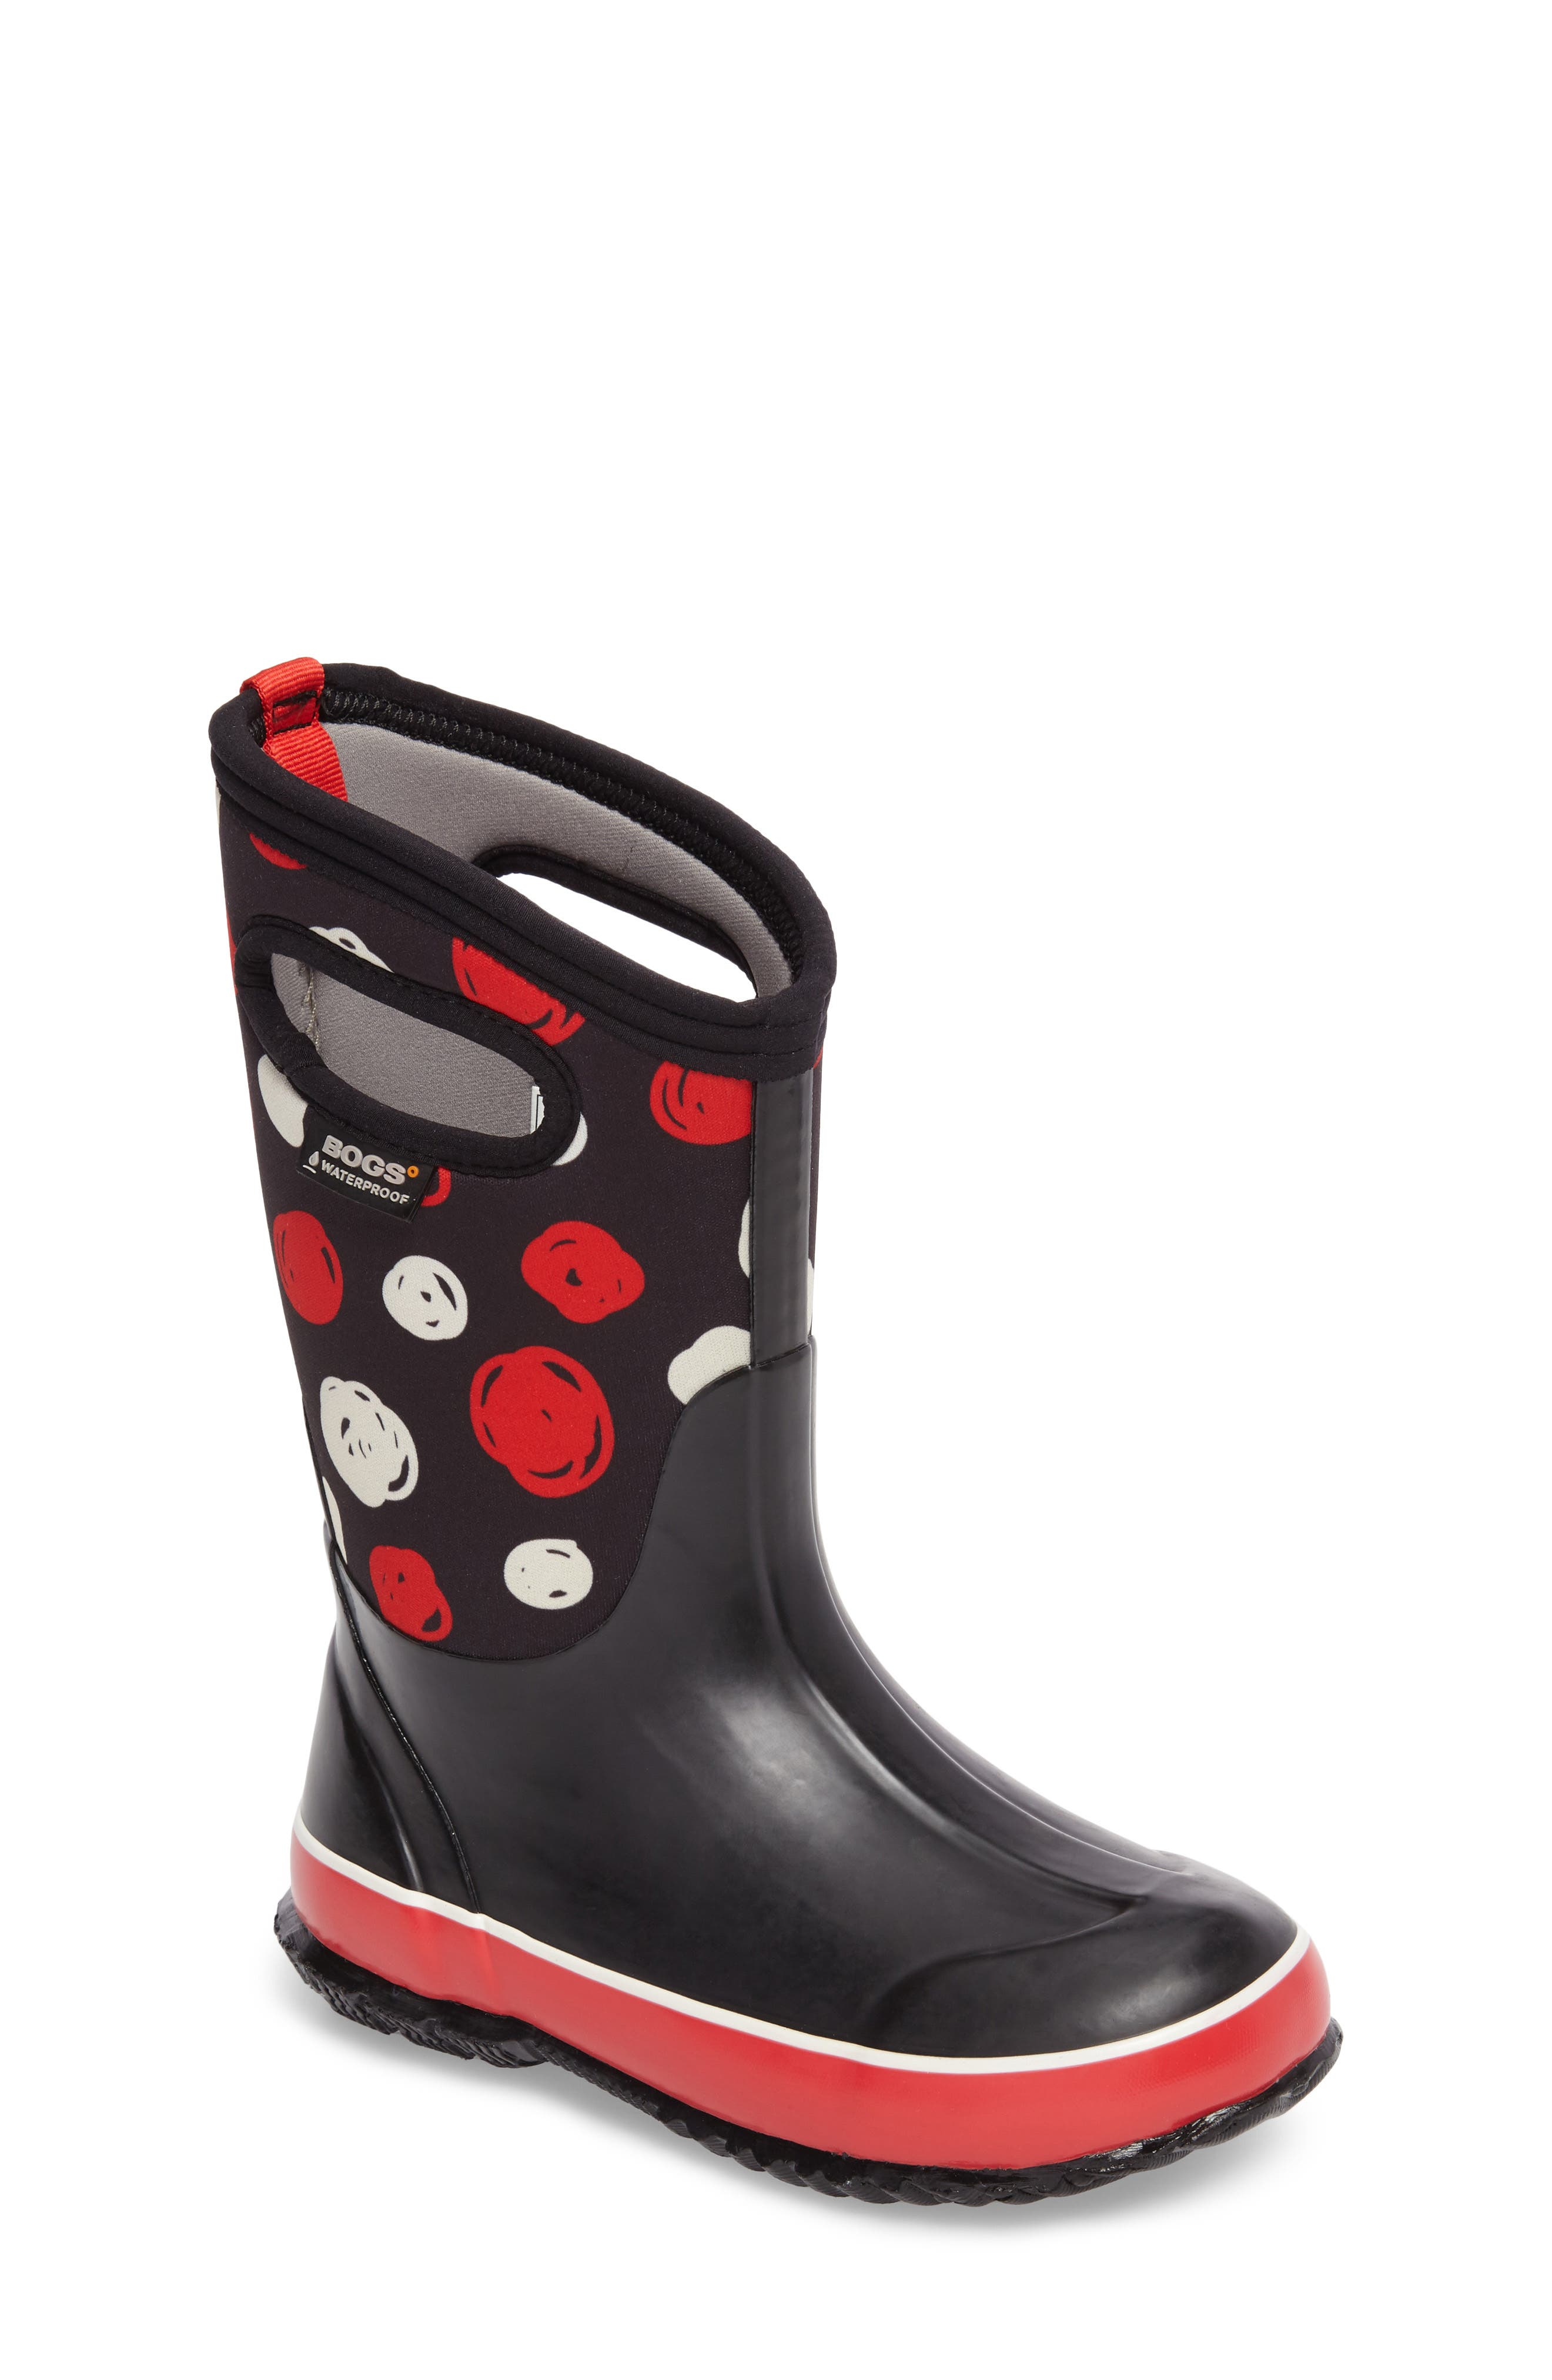 Alternate Image 1 Selected - Bogs Classic Sketched Dots Insulated Waterproof Boot (Walker, Toddler, Little Kid & Big Kid)